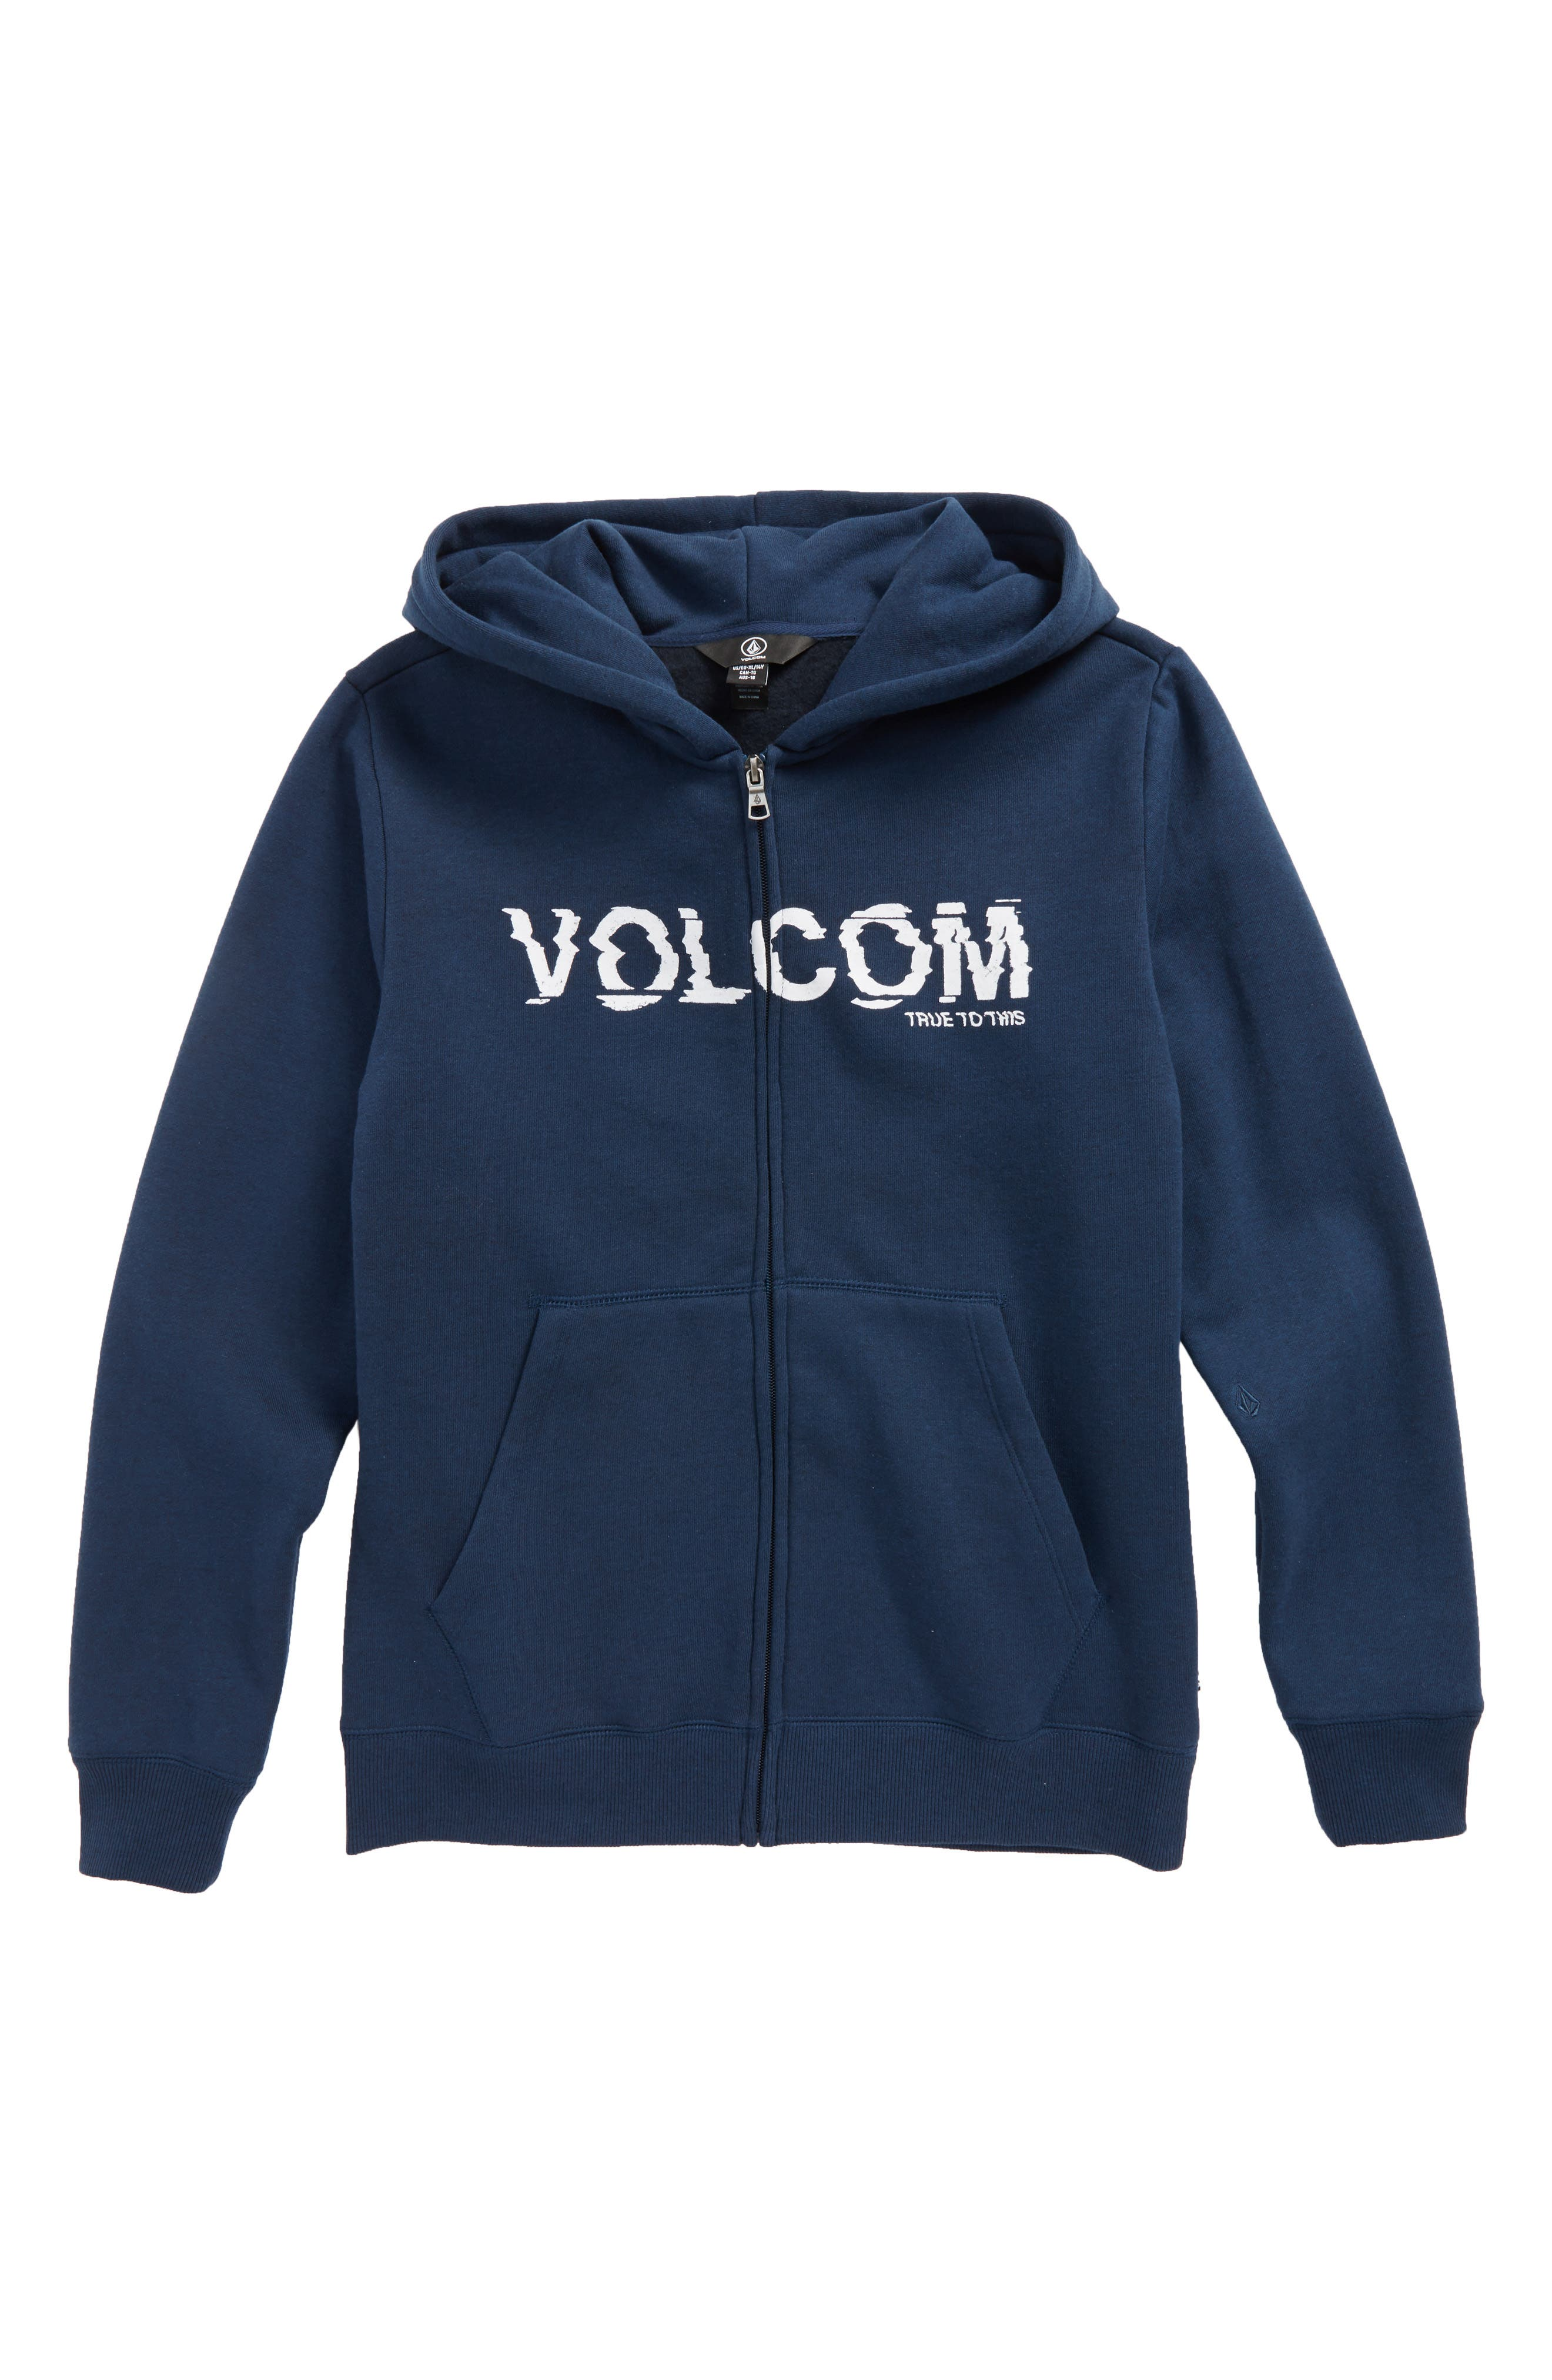 Alternate Image 1 Selected - Volcom Supply Stone Graphic Zip Hoodie (Big Boys)